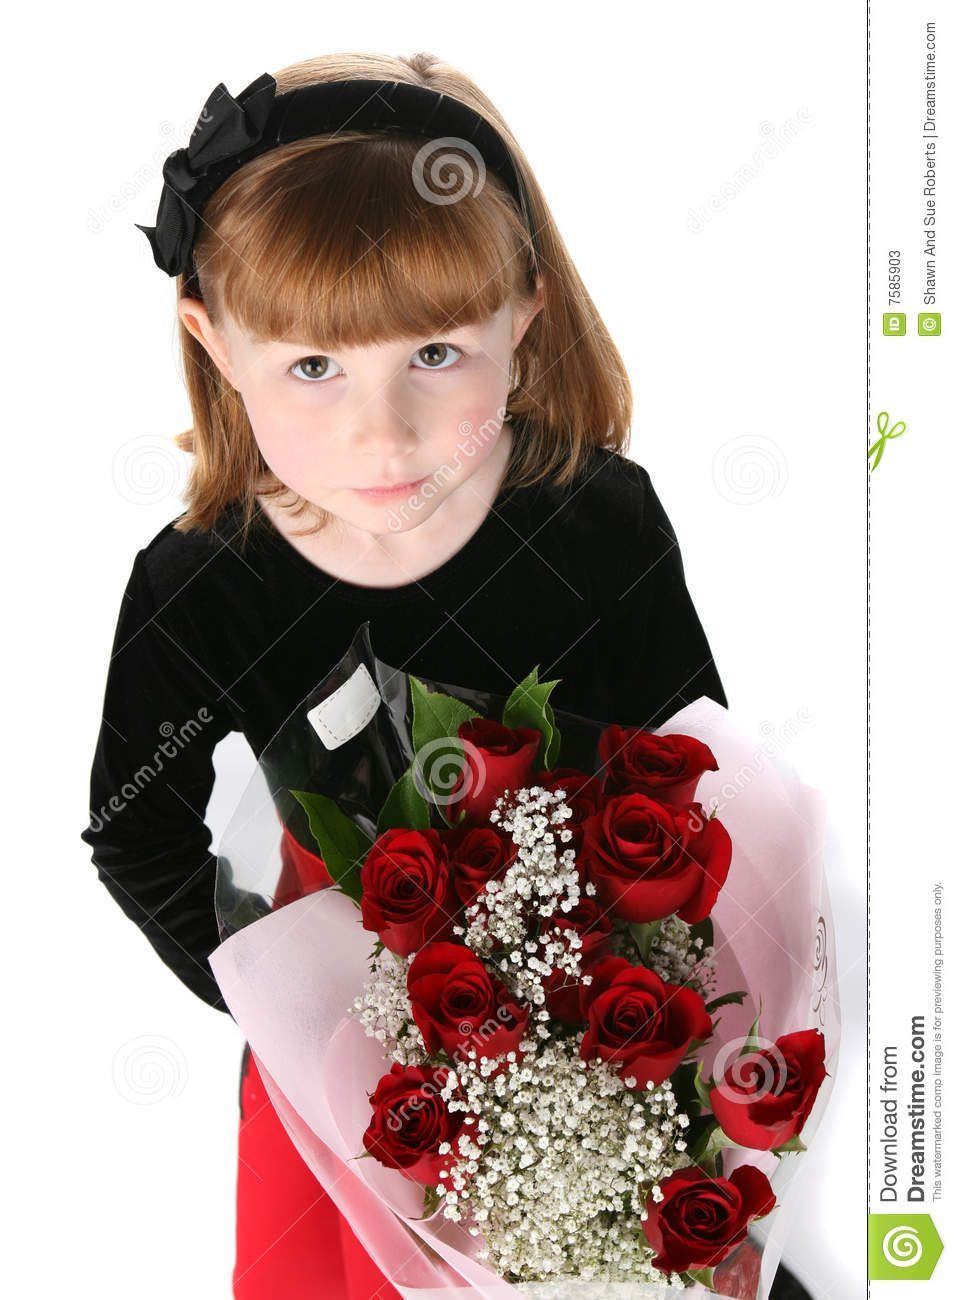 looking down on a cute little girl with red roses stock image image of high dress 7585903. Black Bedroom Furniture Sets. Home Design Ideas